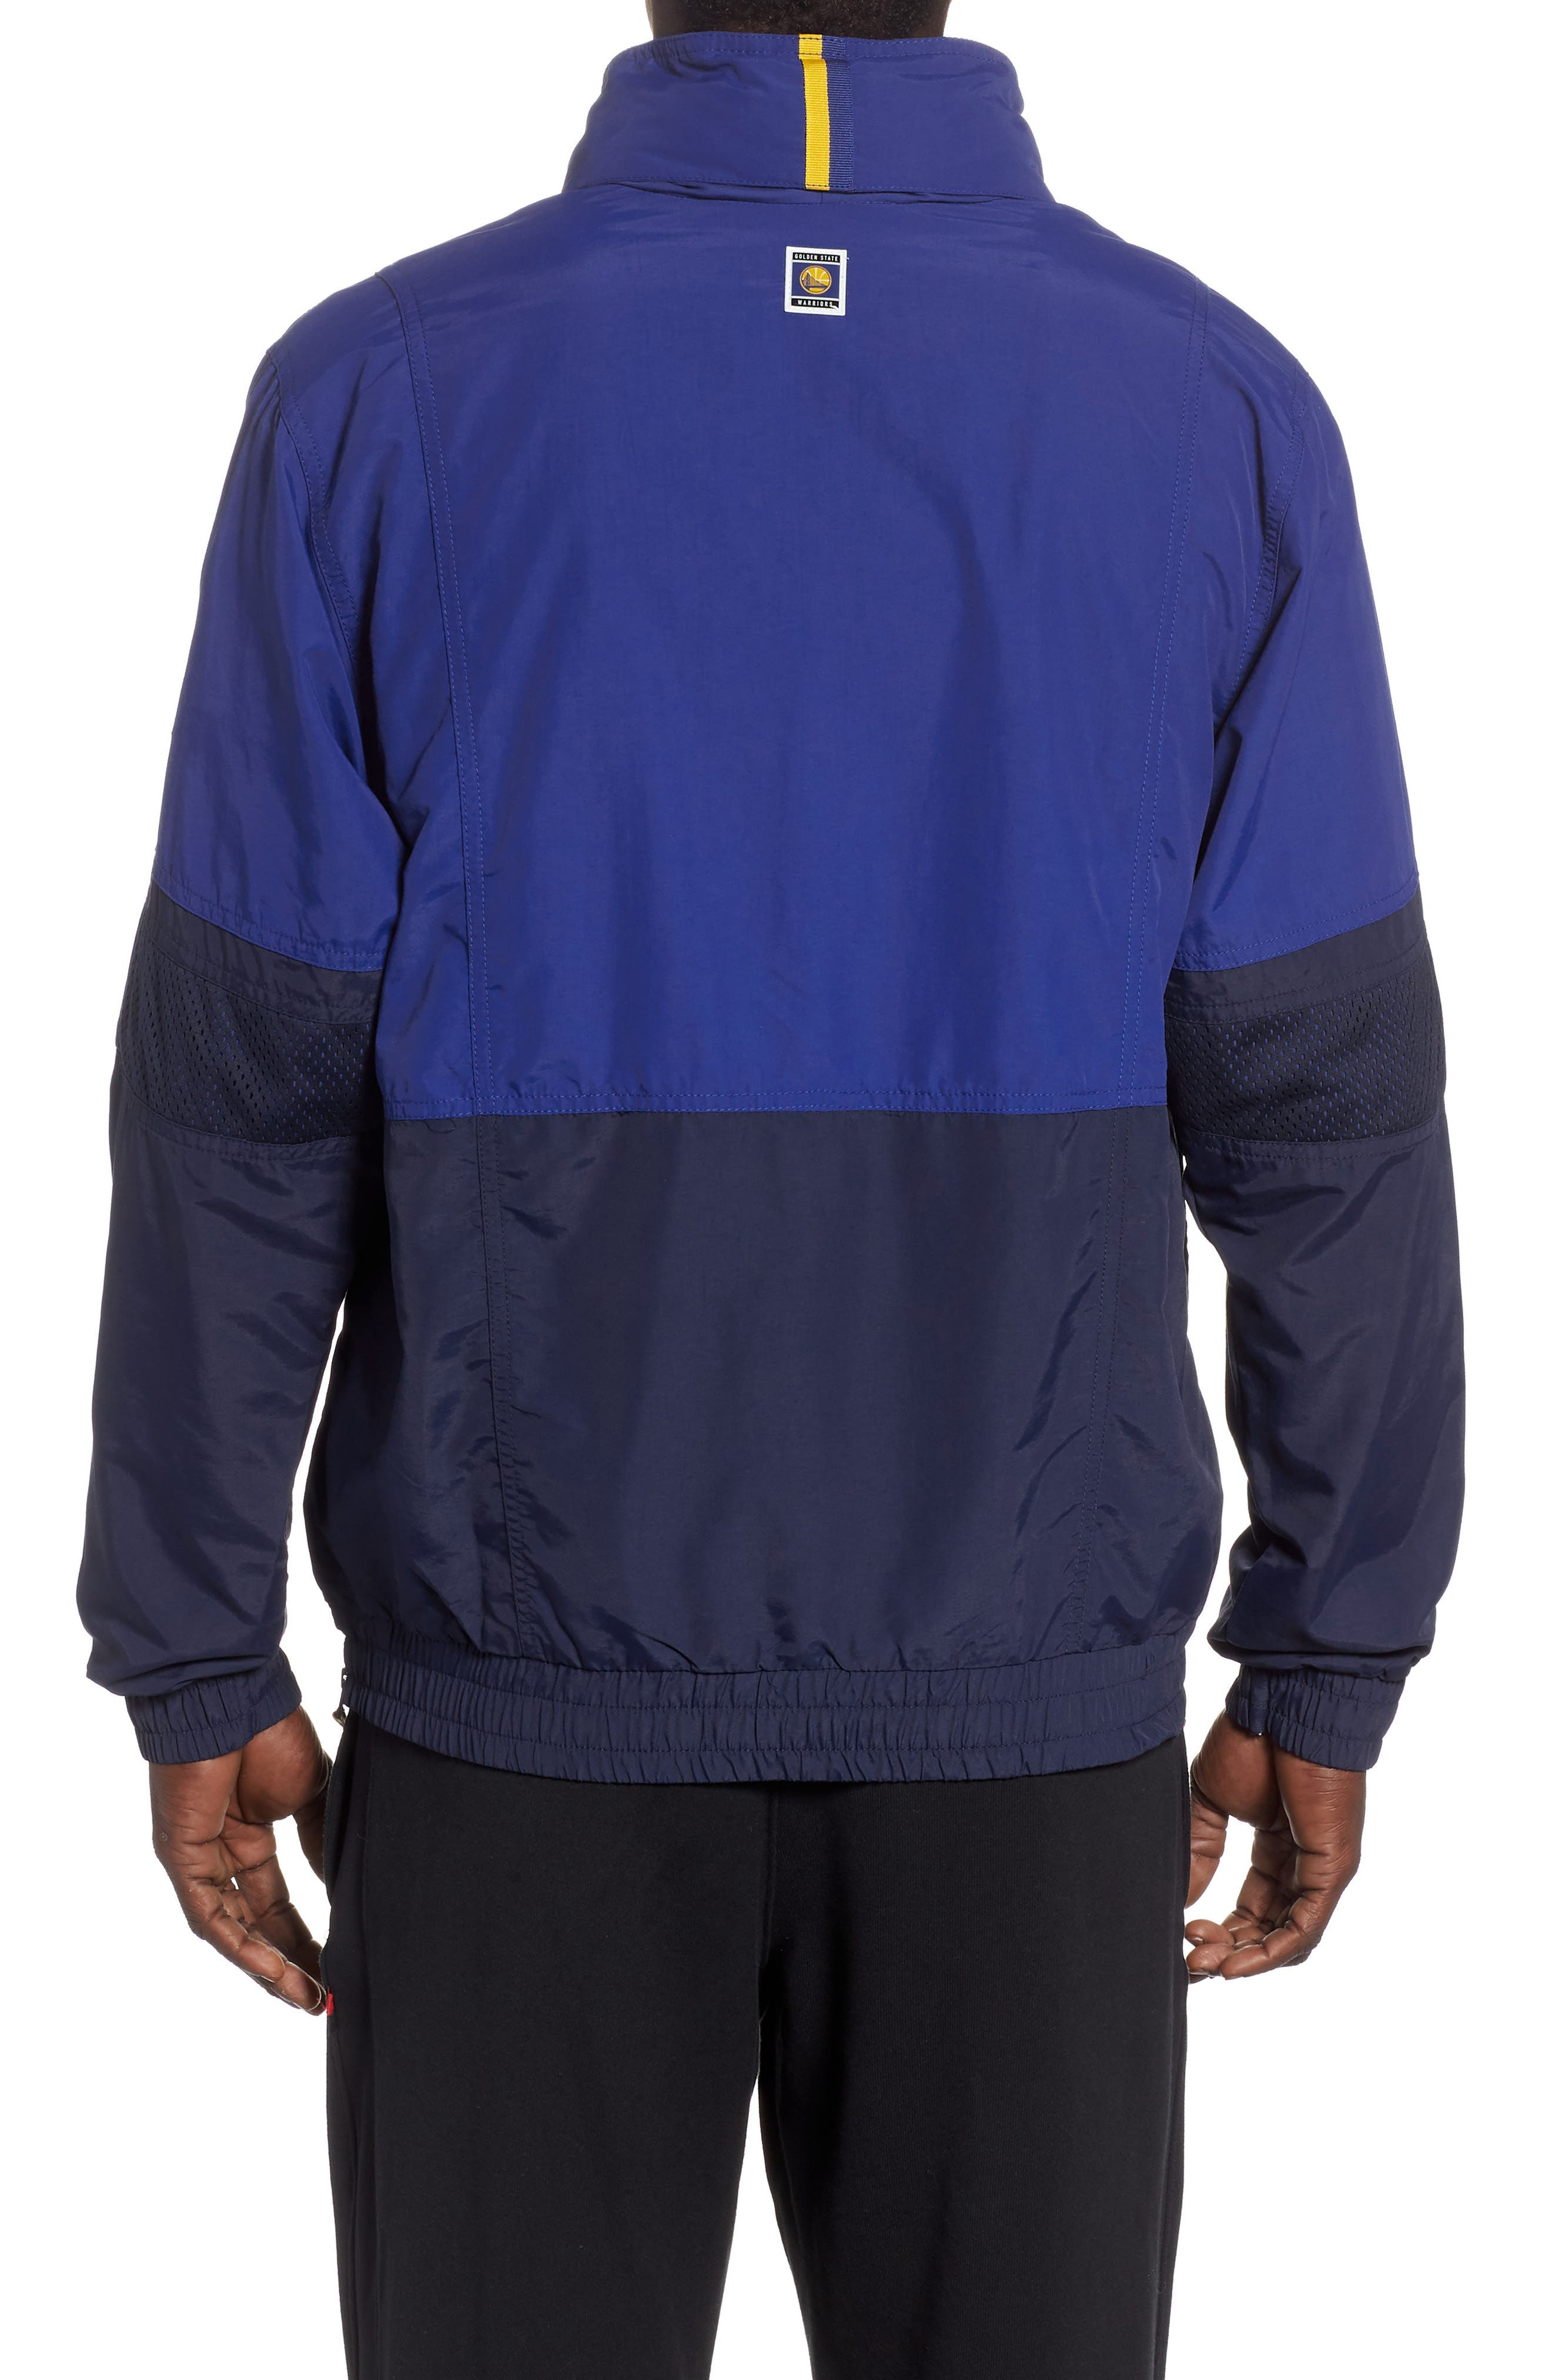 Golden State Warriors Courtside Warm-Up Jacket,                             Alternate thumbnail 2, color,                             RUSH BLUE/ NAVY/ AMARILLO